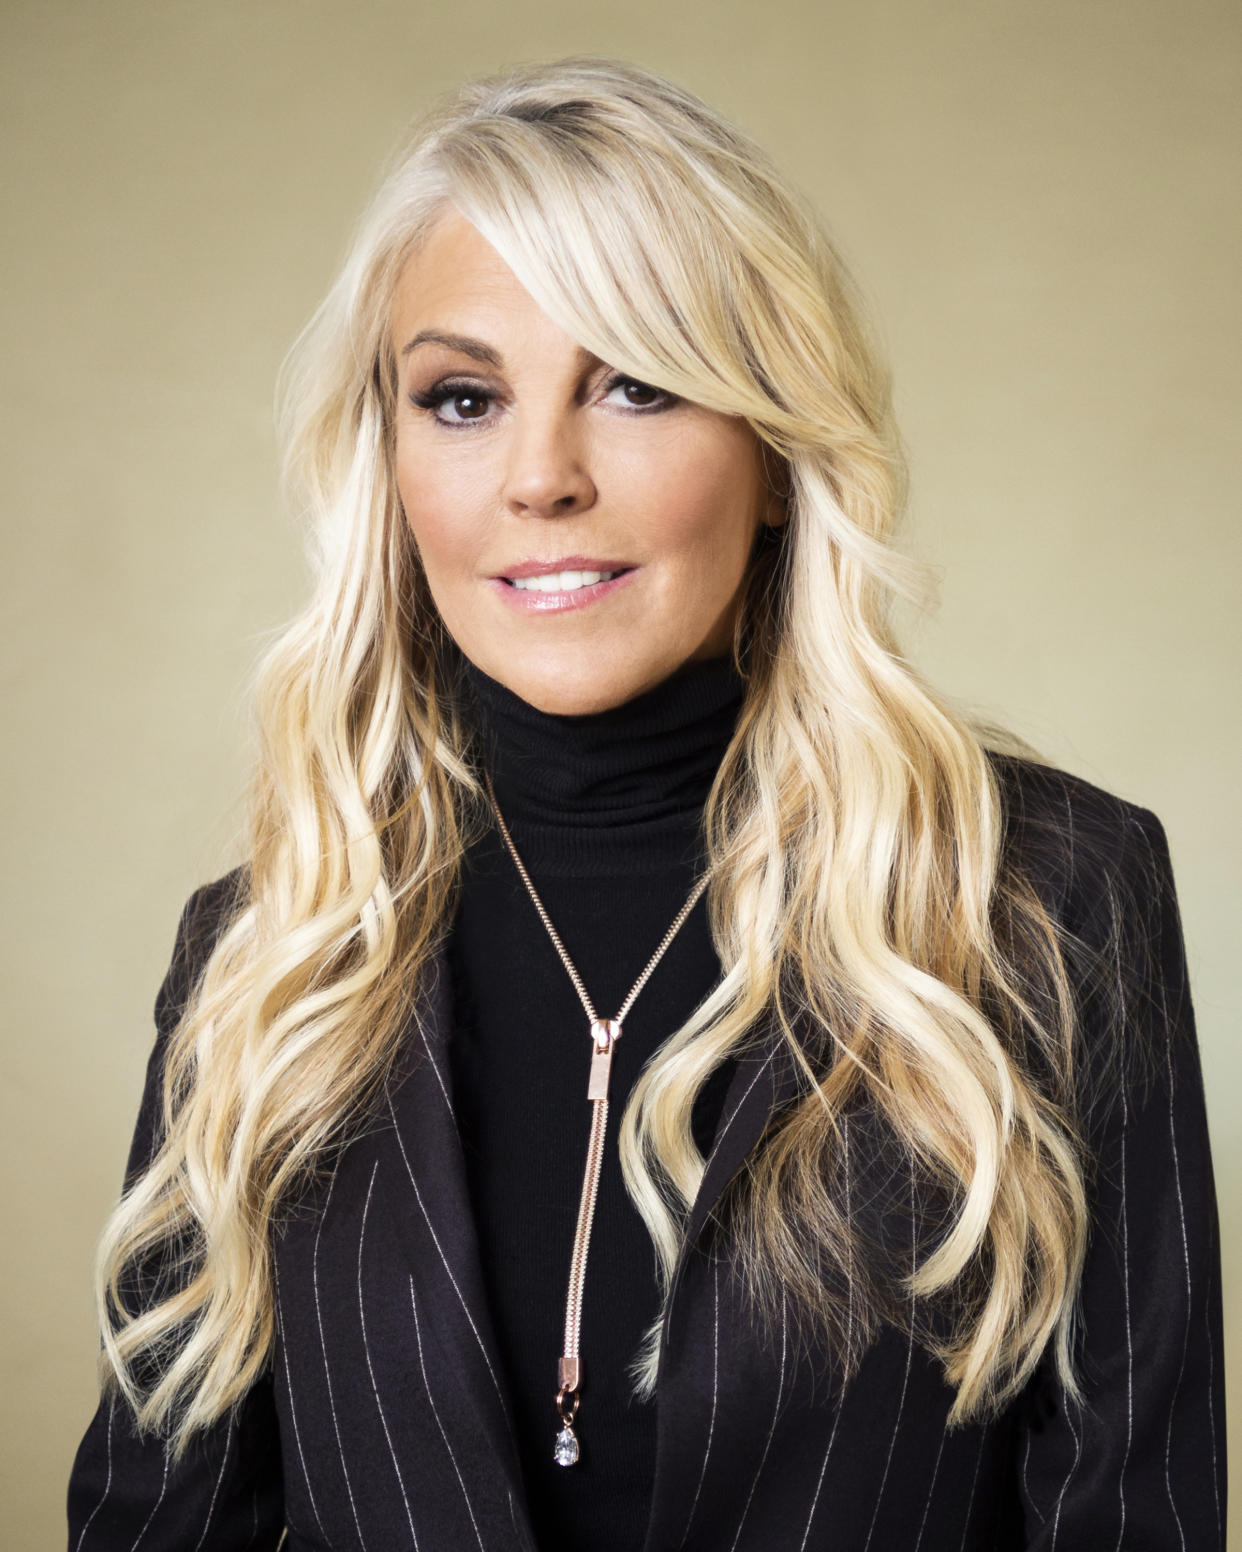 Dina Lohan was arrested Saturday night in Long Island. (Photo: Mary Kouw/CBS via Getty Images)